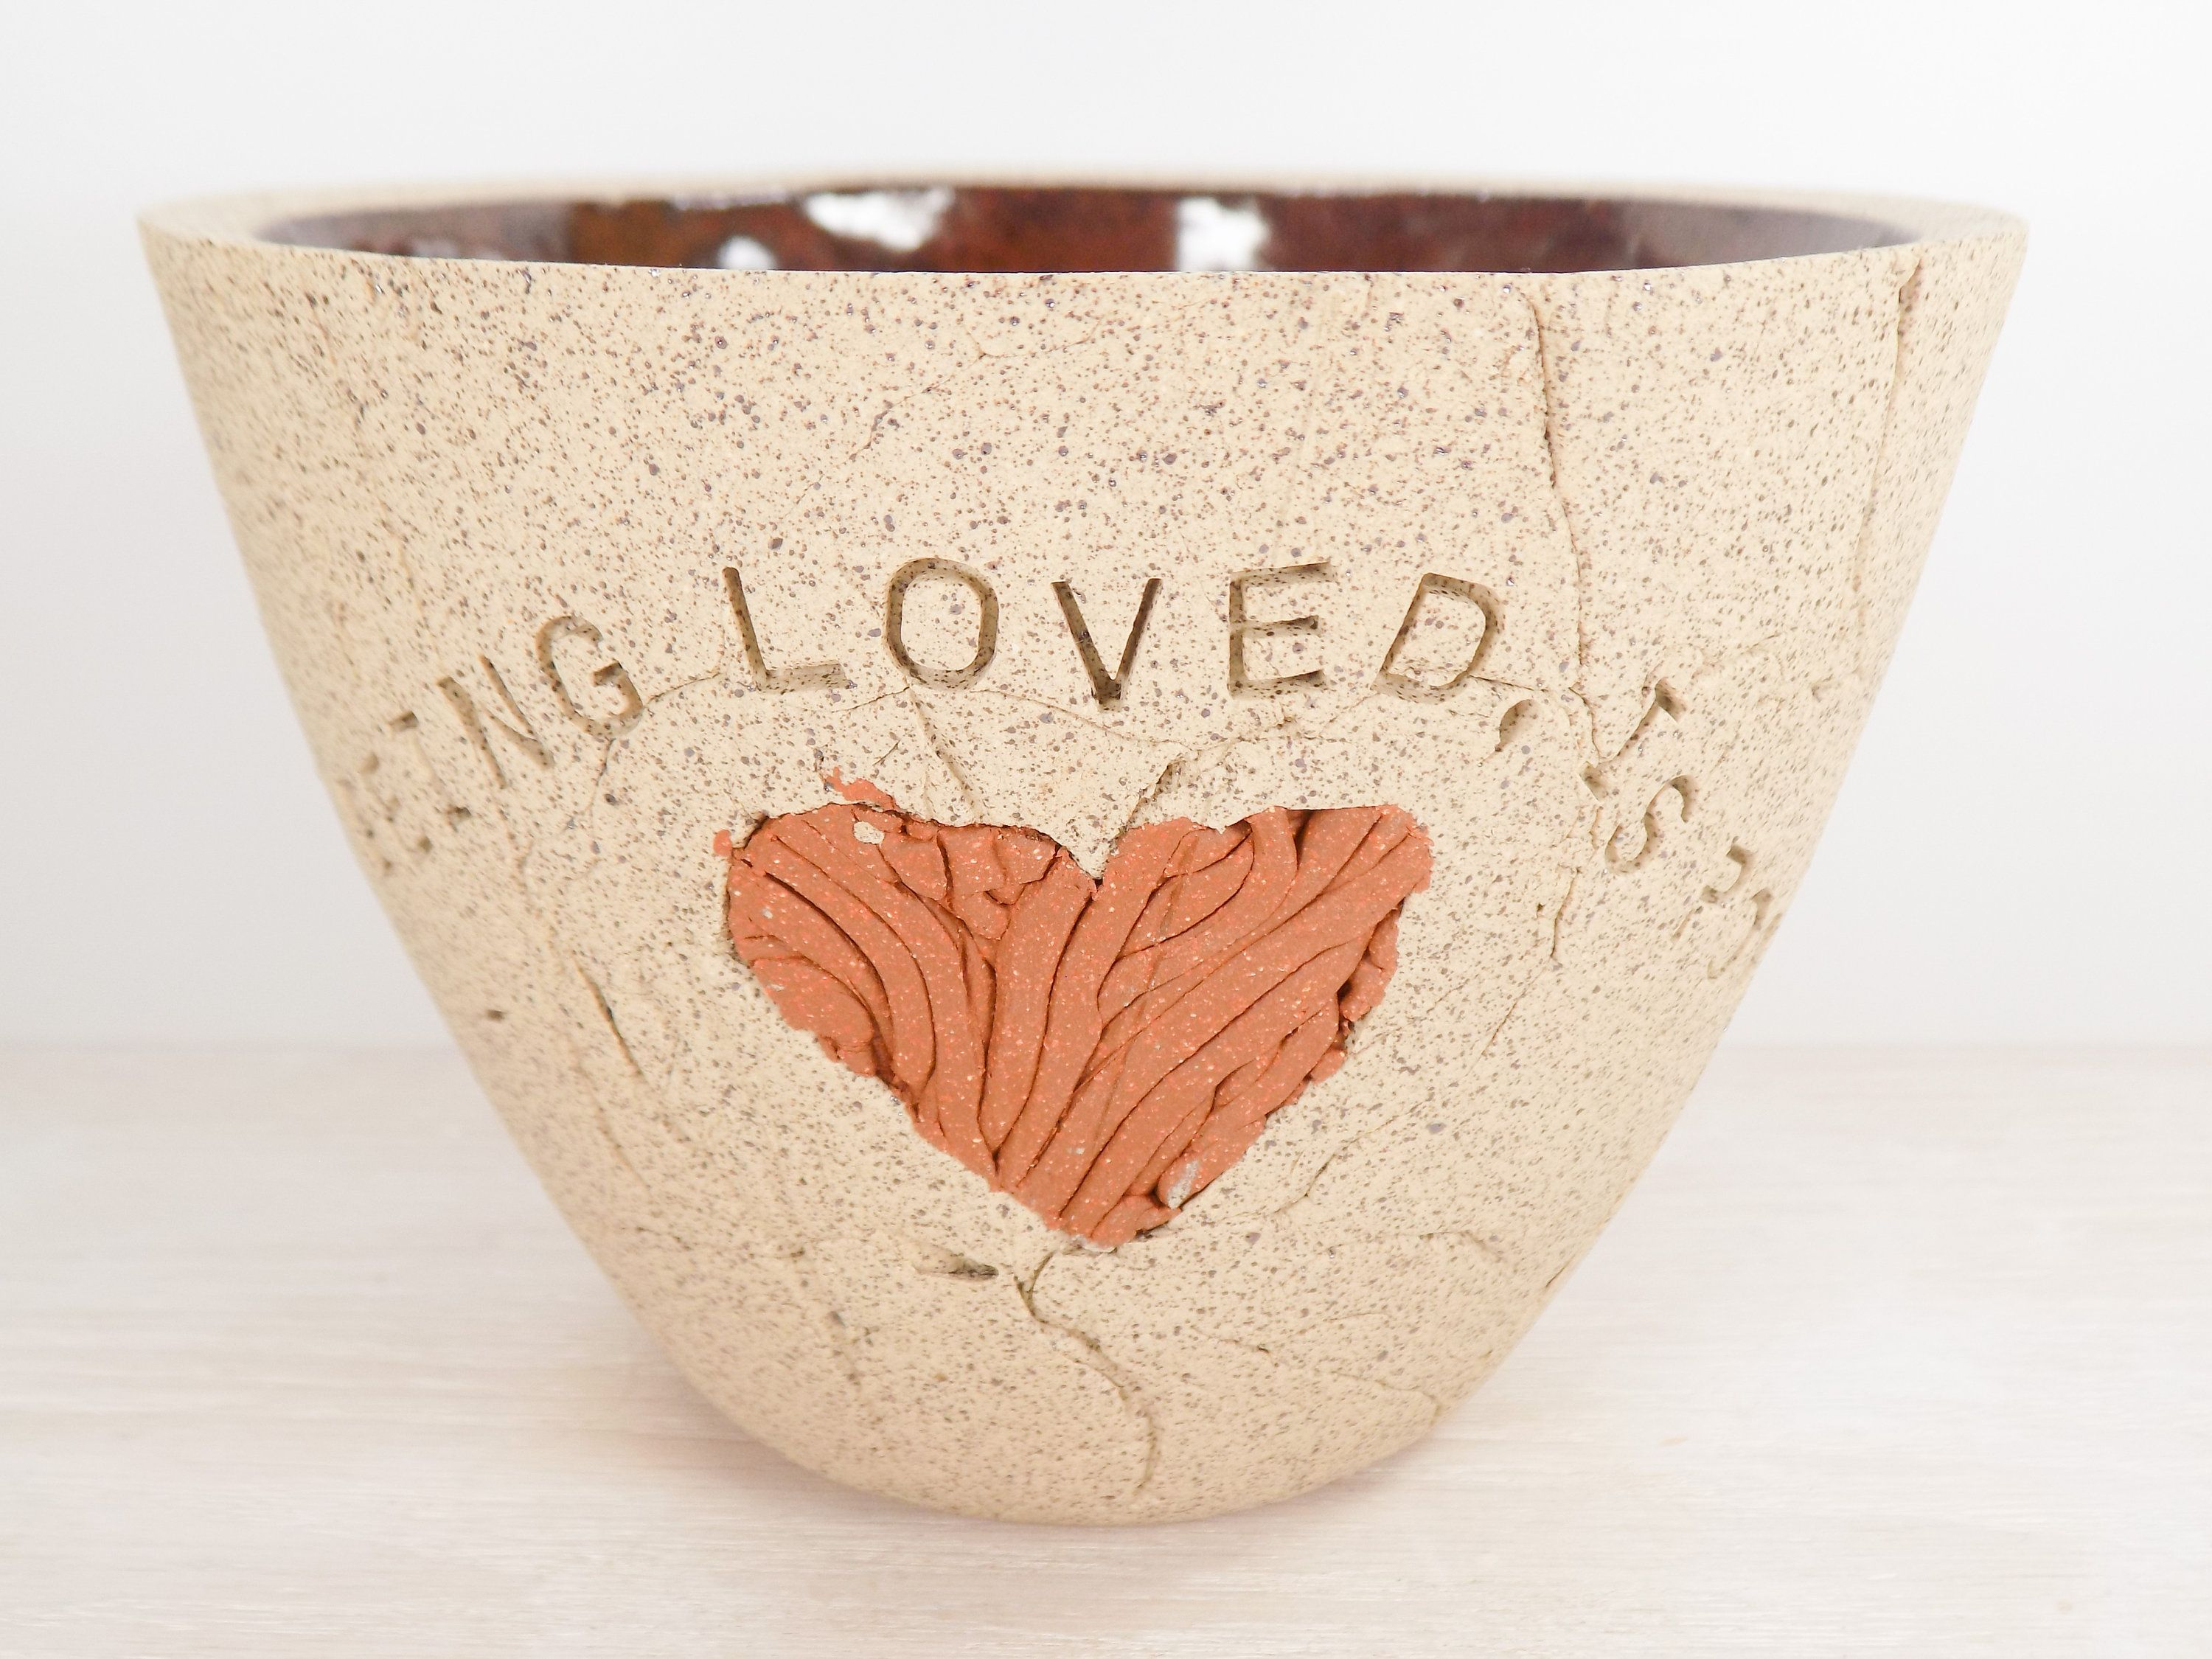 Oscar Wilde Pottery Bowl Who, Being Loved, Is Poor